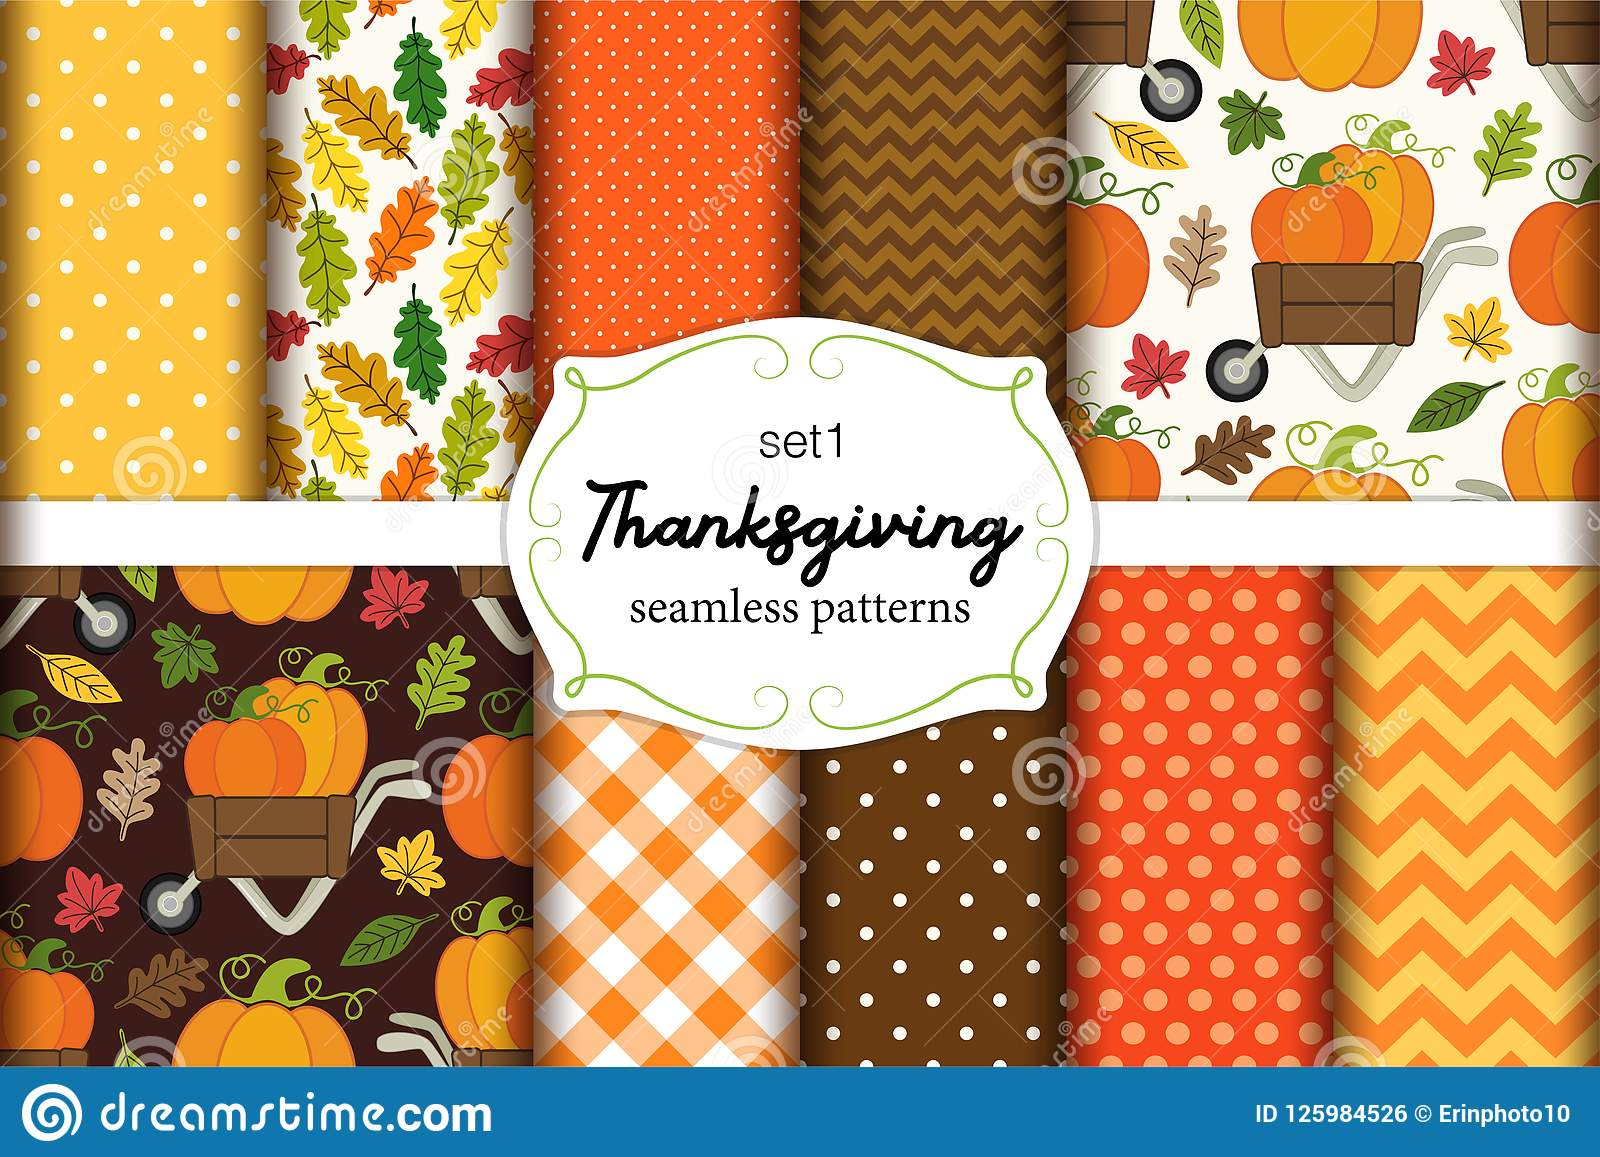 Set Of 10 Cute Seamless Thanksgiving Patterns With Pumpkins